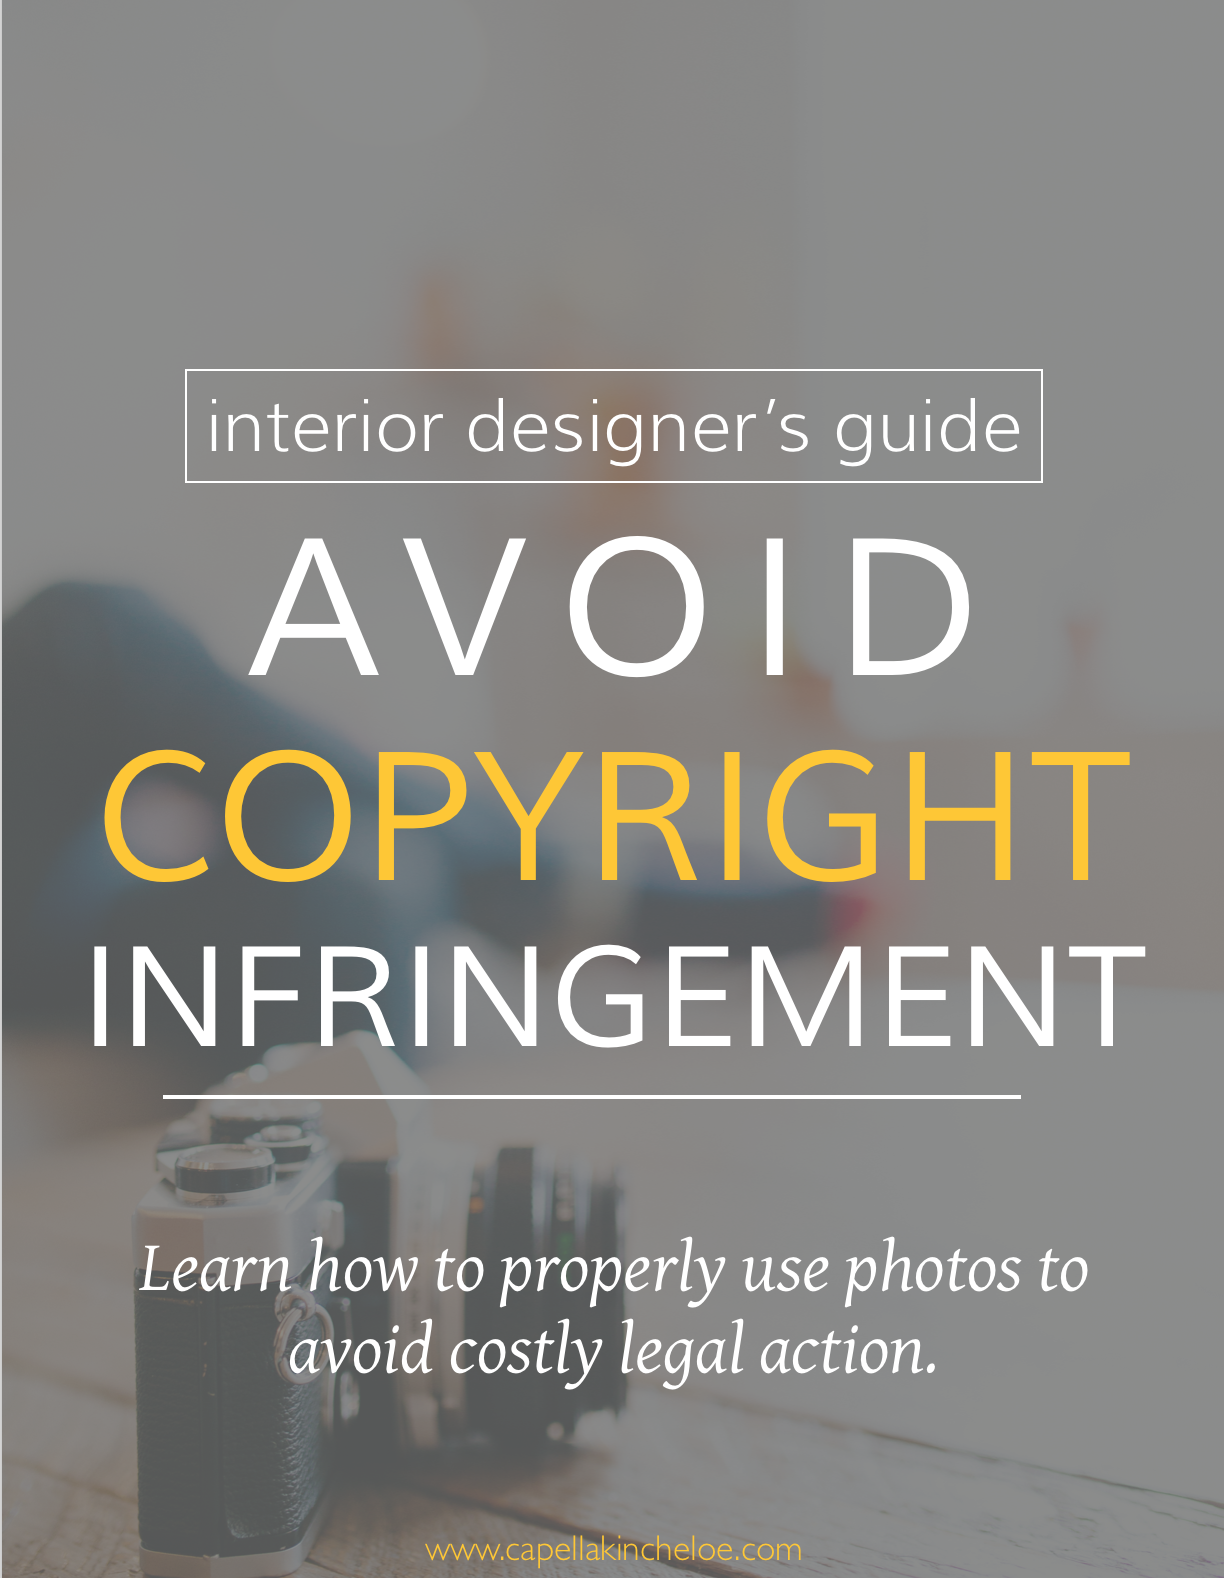 The interior designer's guide to avoiding copyright infringement.  Learn how to properly use photos to avoid costly legal action.